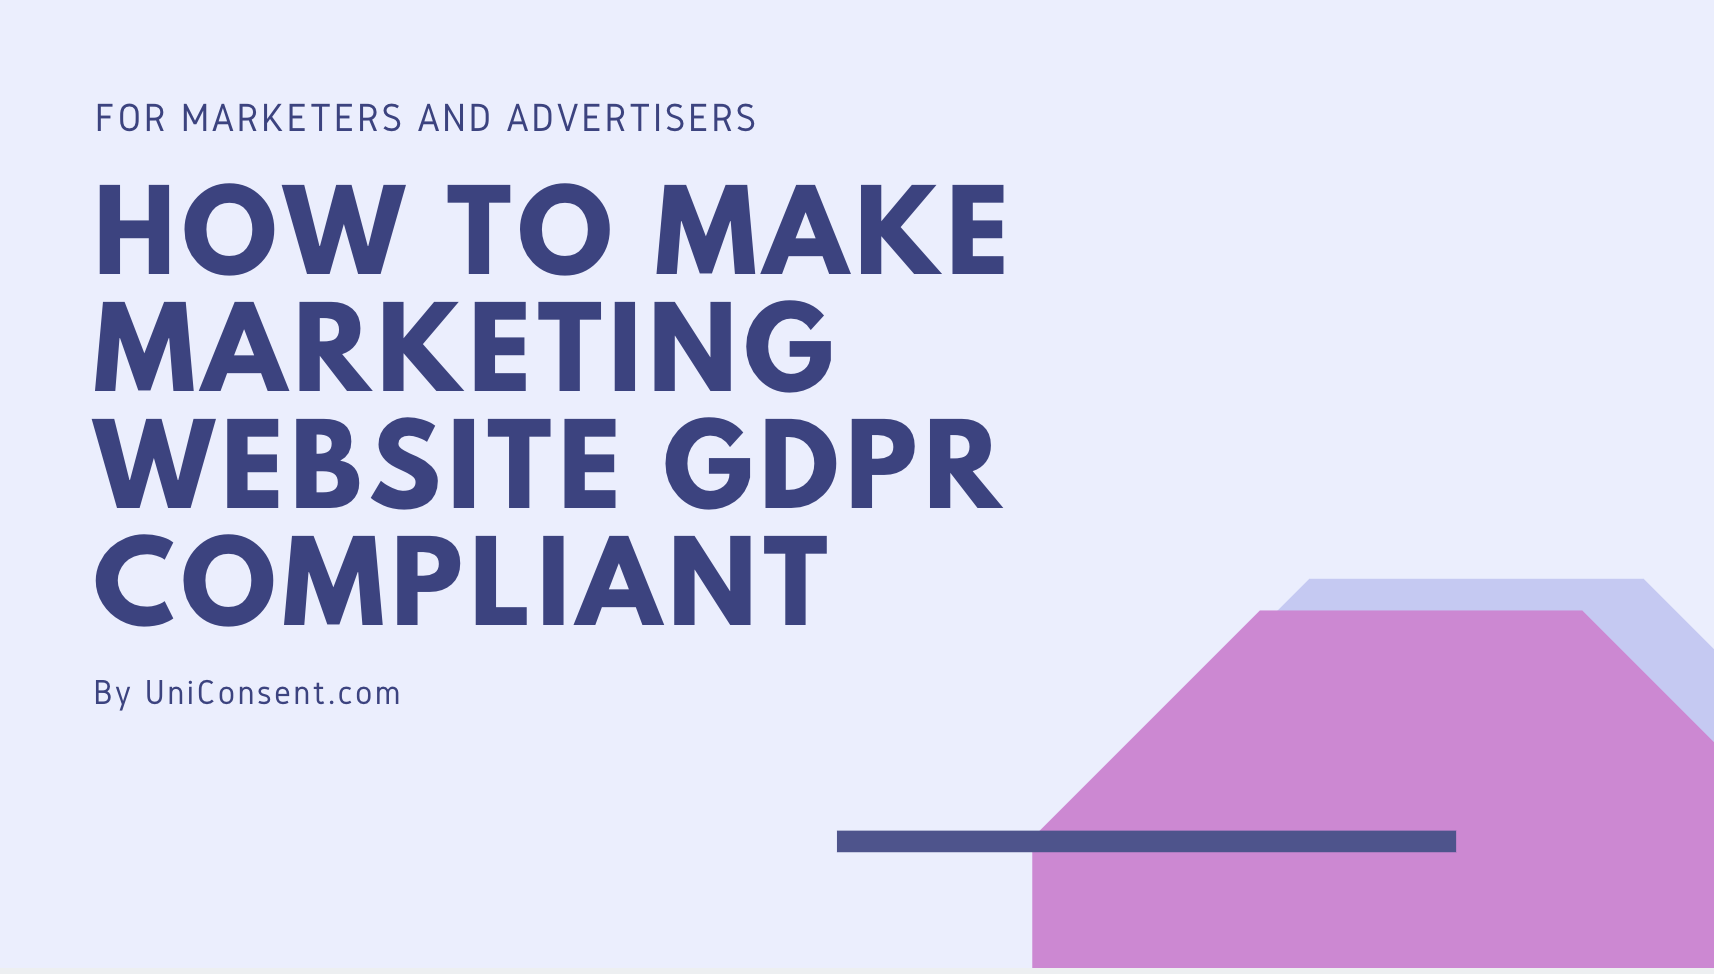 How to make marketing website GDPR compliant